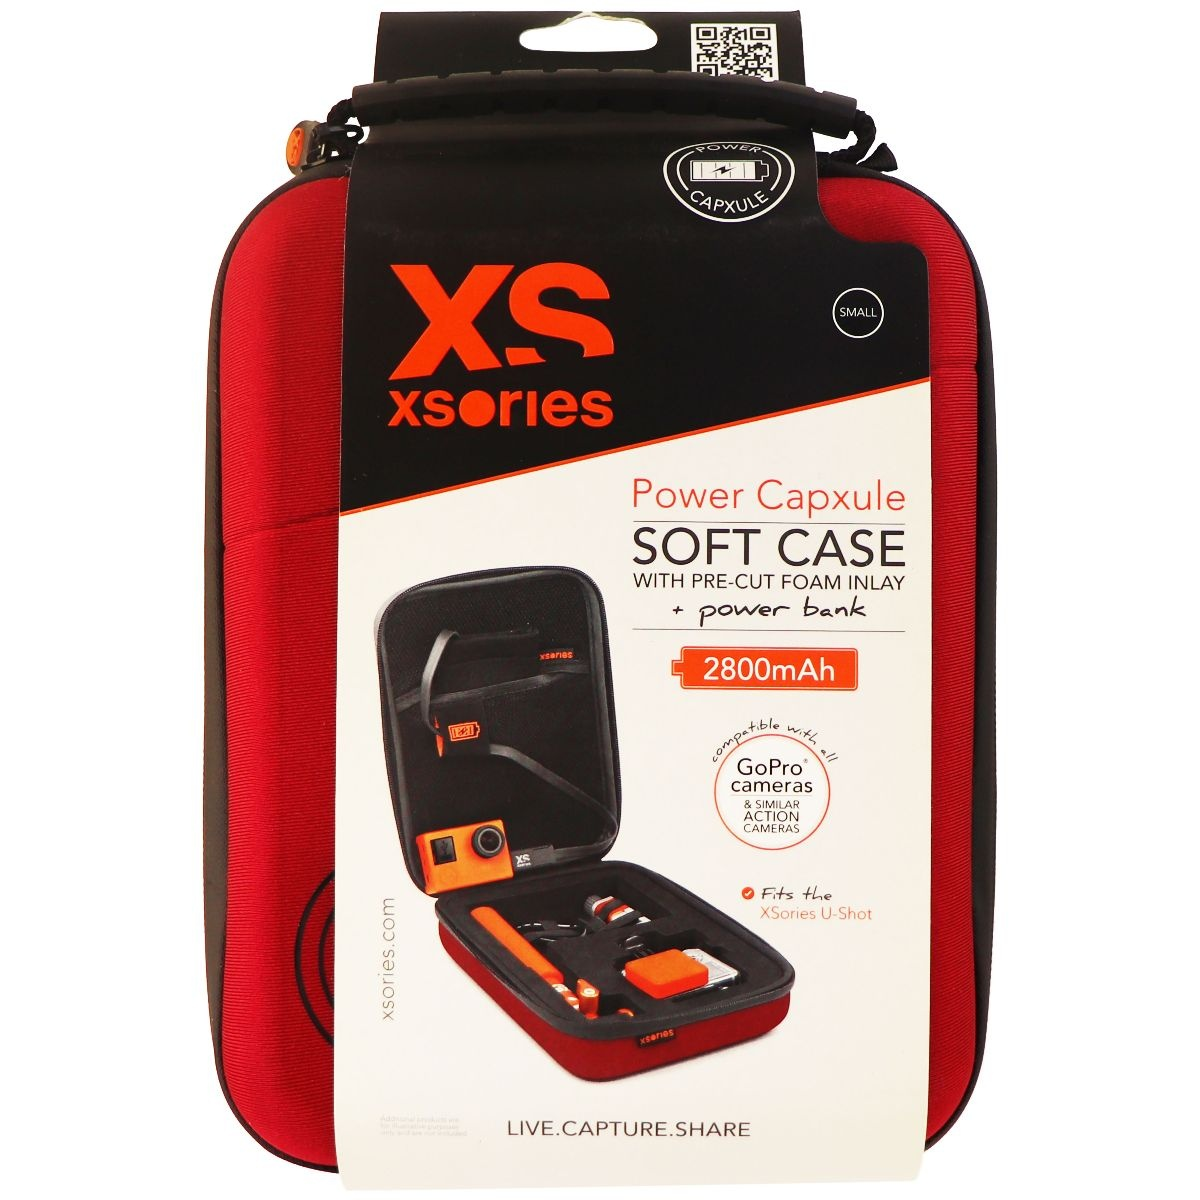 XSories Power Capxule Soft Case with Pre-Cut Foam Inlay for GoPro Cameras - Red